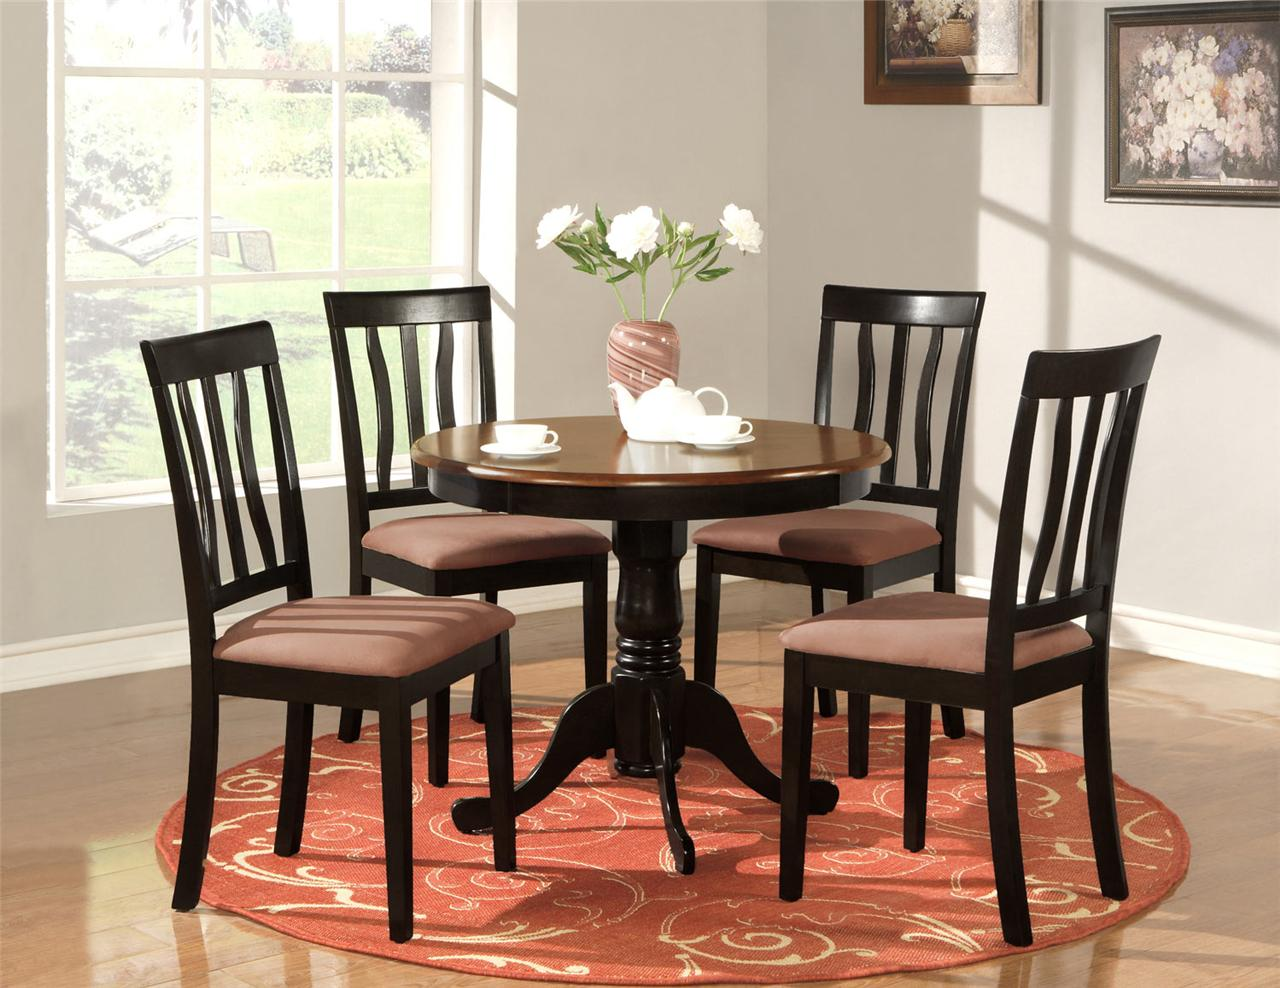 5 pc round table dinette kitchen table 4 chairs oak ebay for Kitchen dinette sets